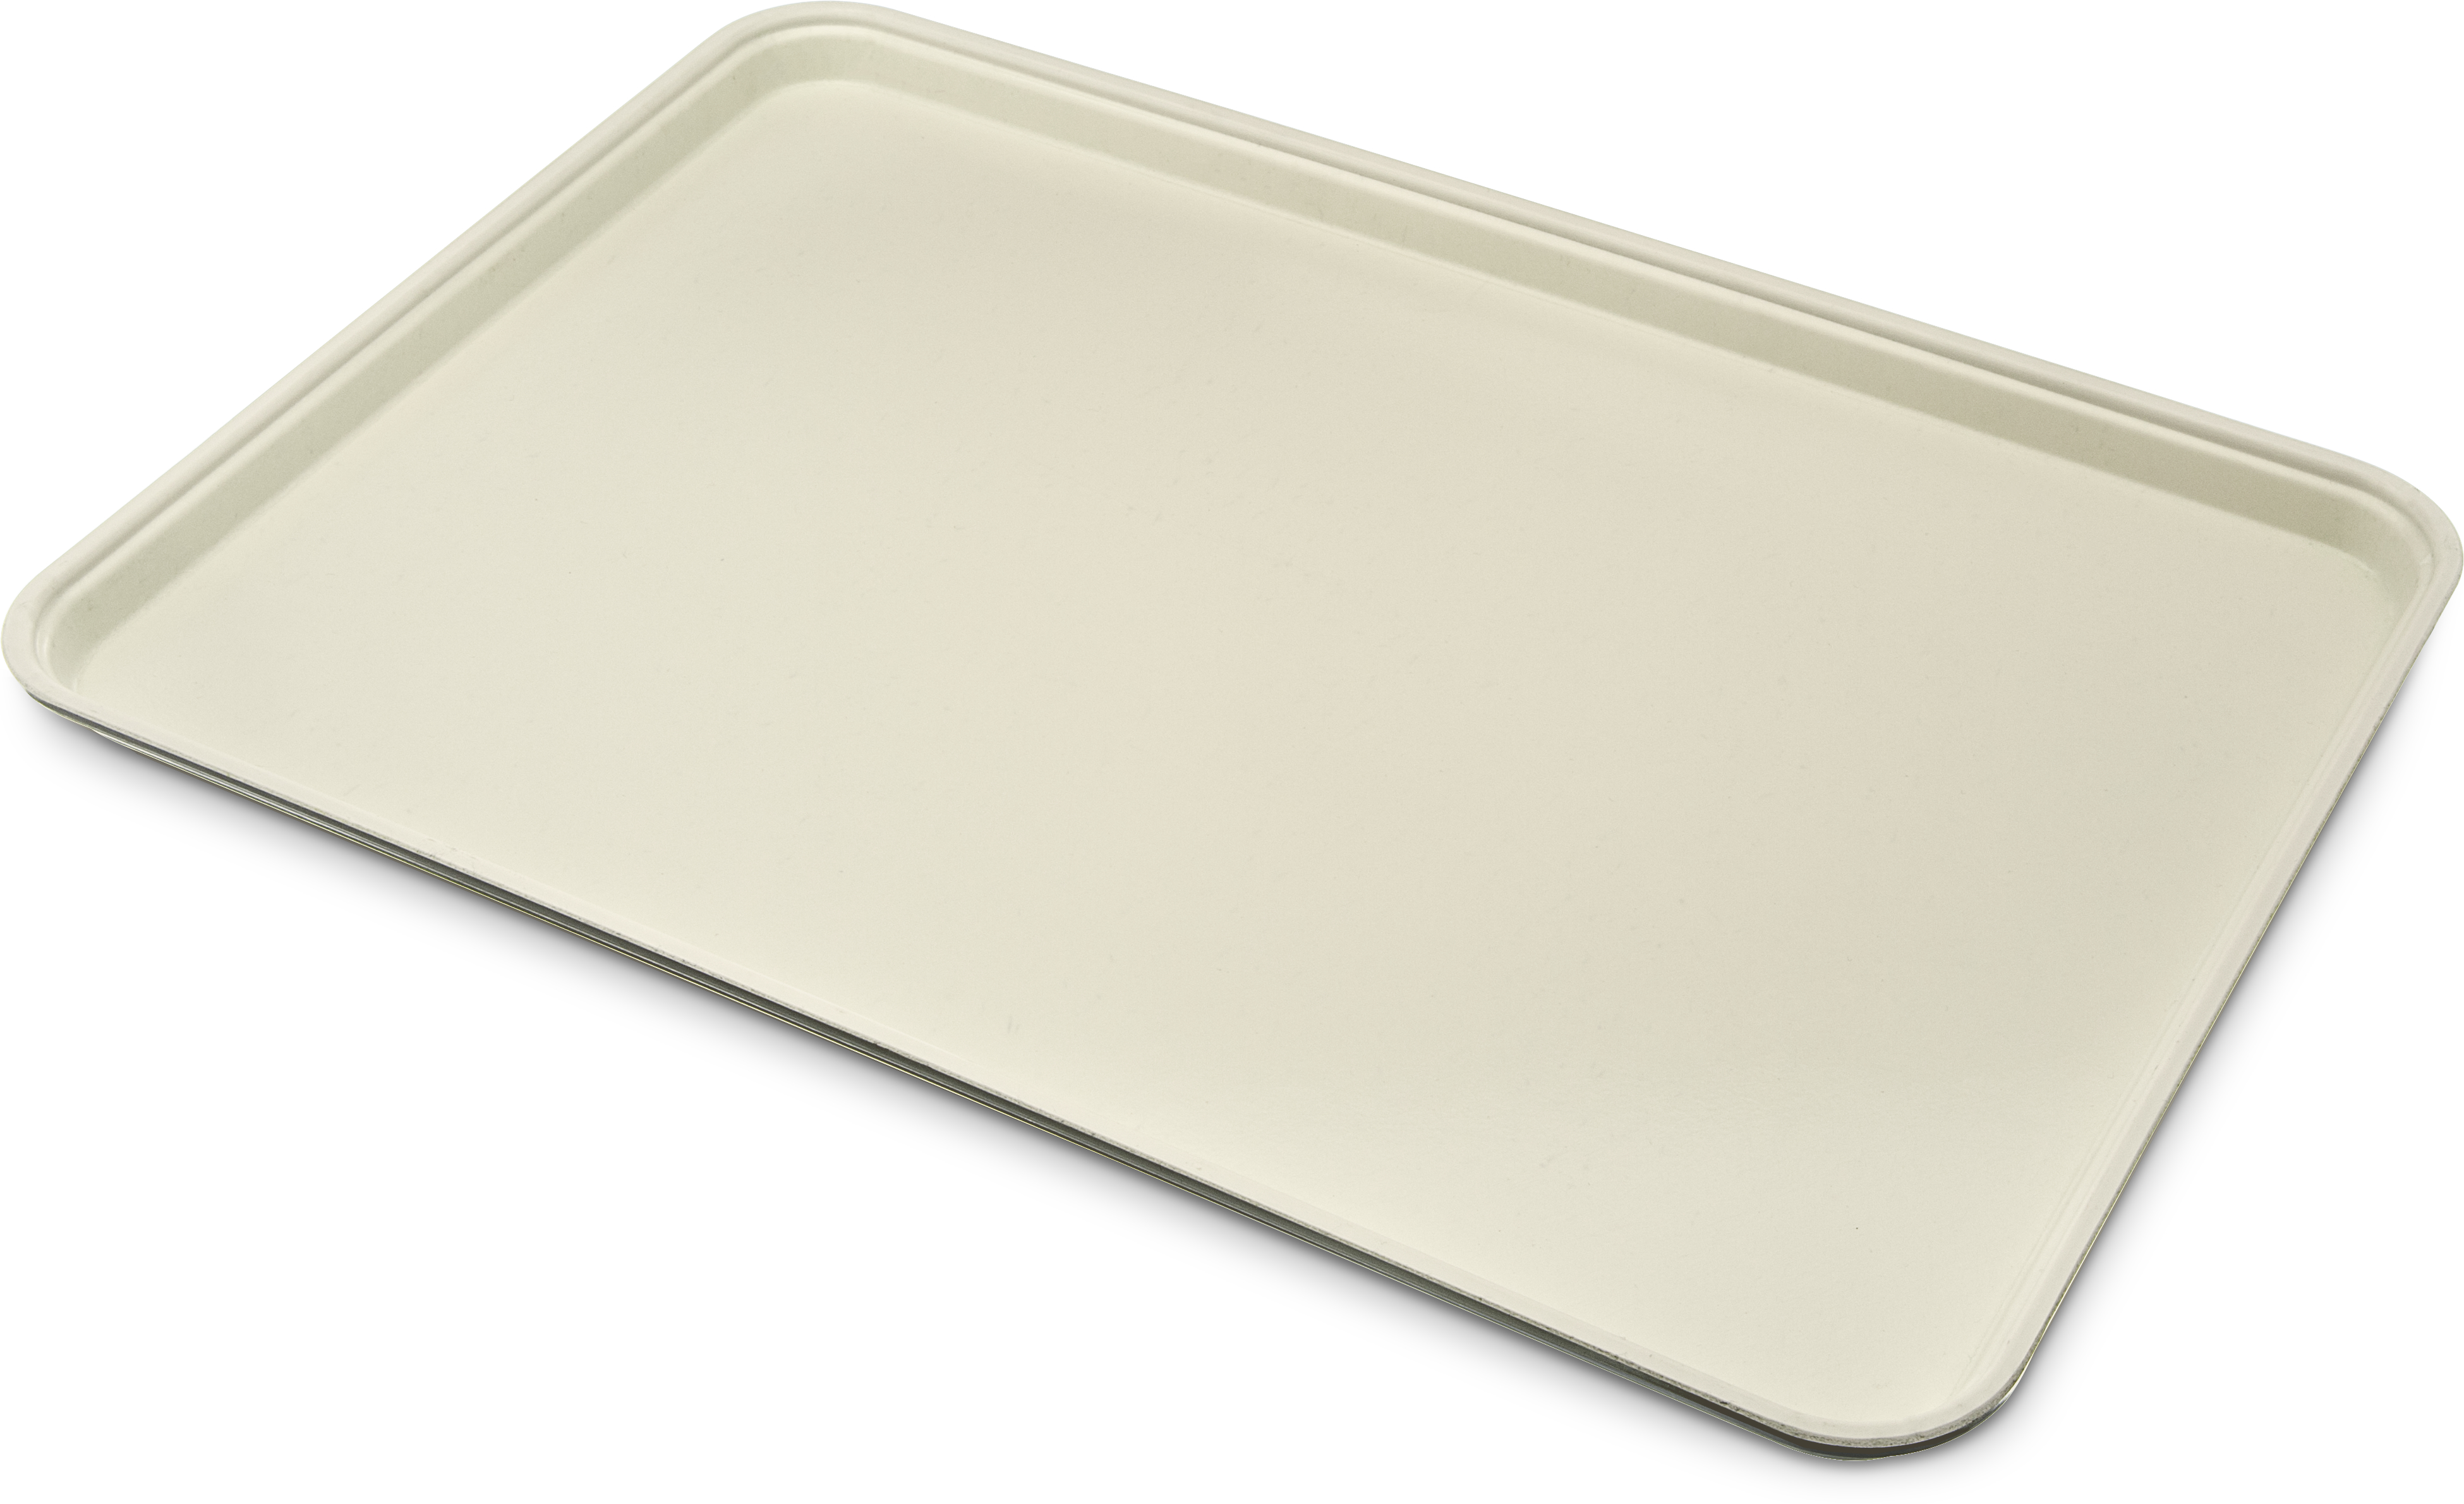 Glasteel Tray Display/Bakery 17.9 x 25.6 - Almond